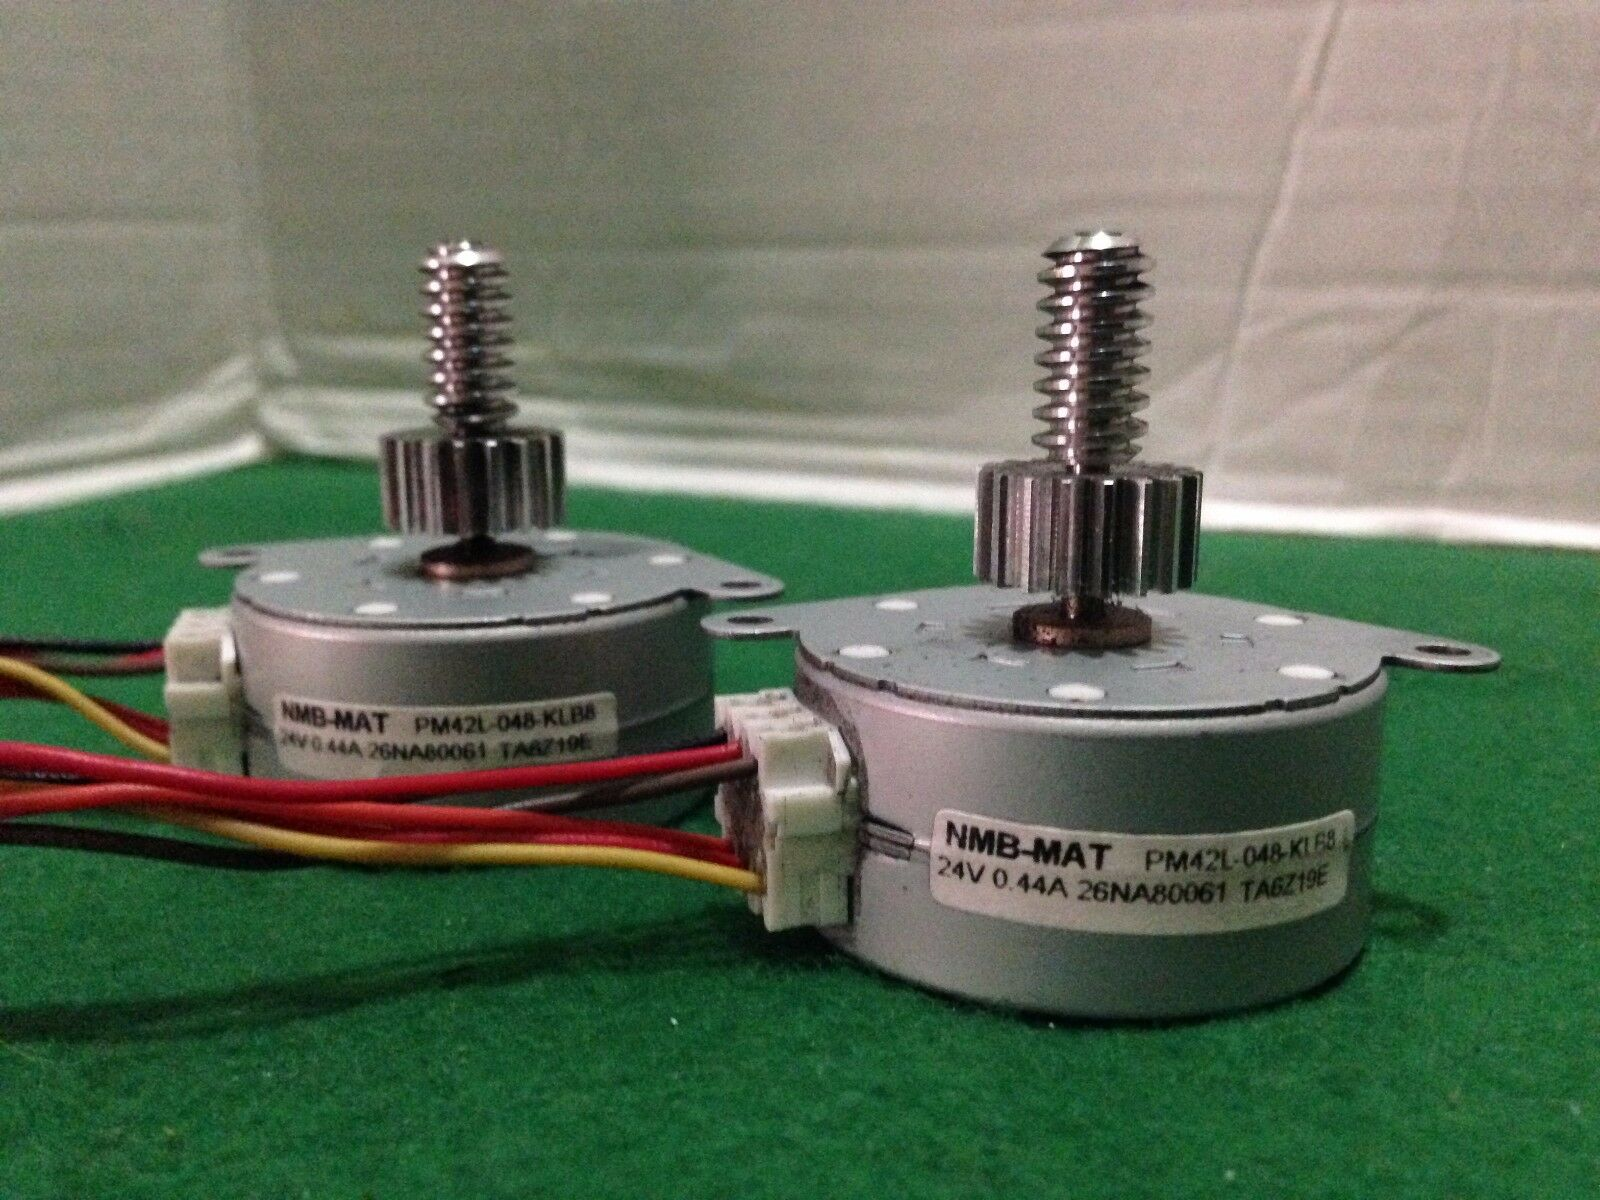 10 Stepper motors NMB-MAT PM42L 24V Free Shipping in USA PM42L-048-XRV4